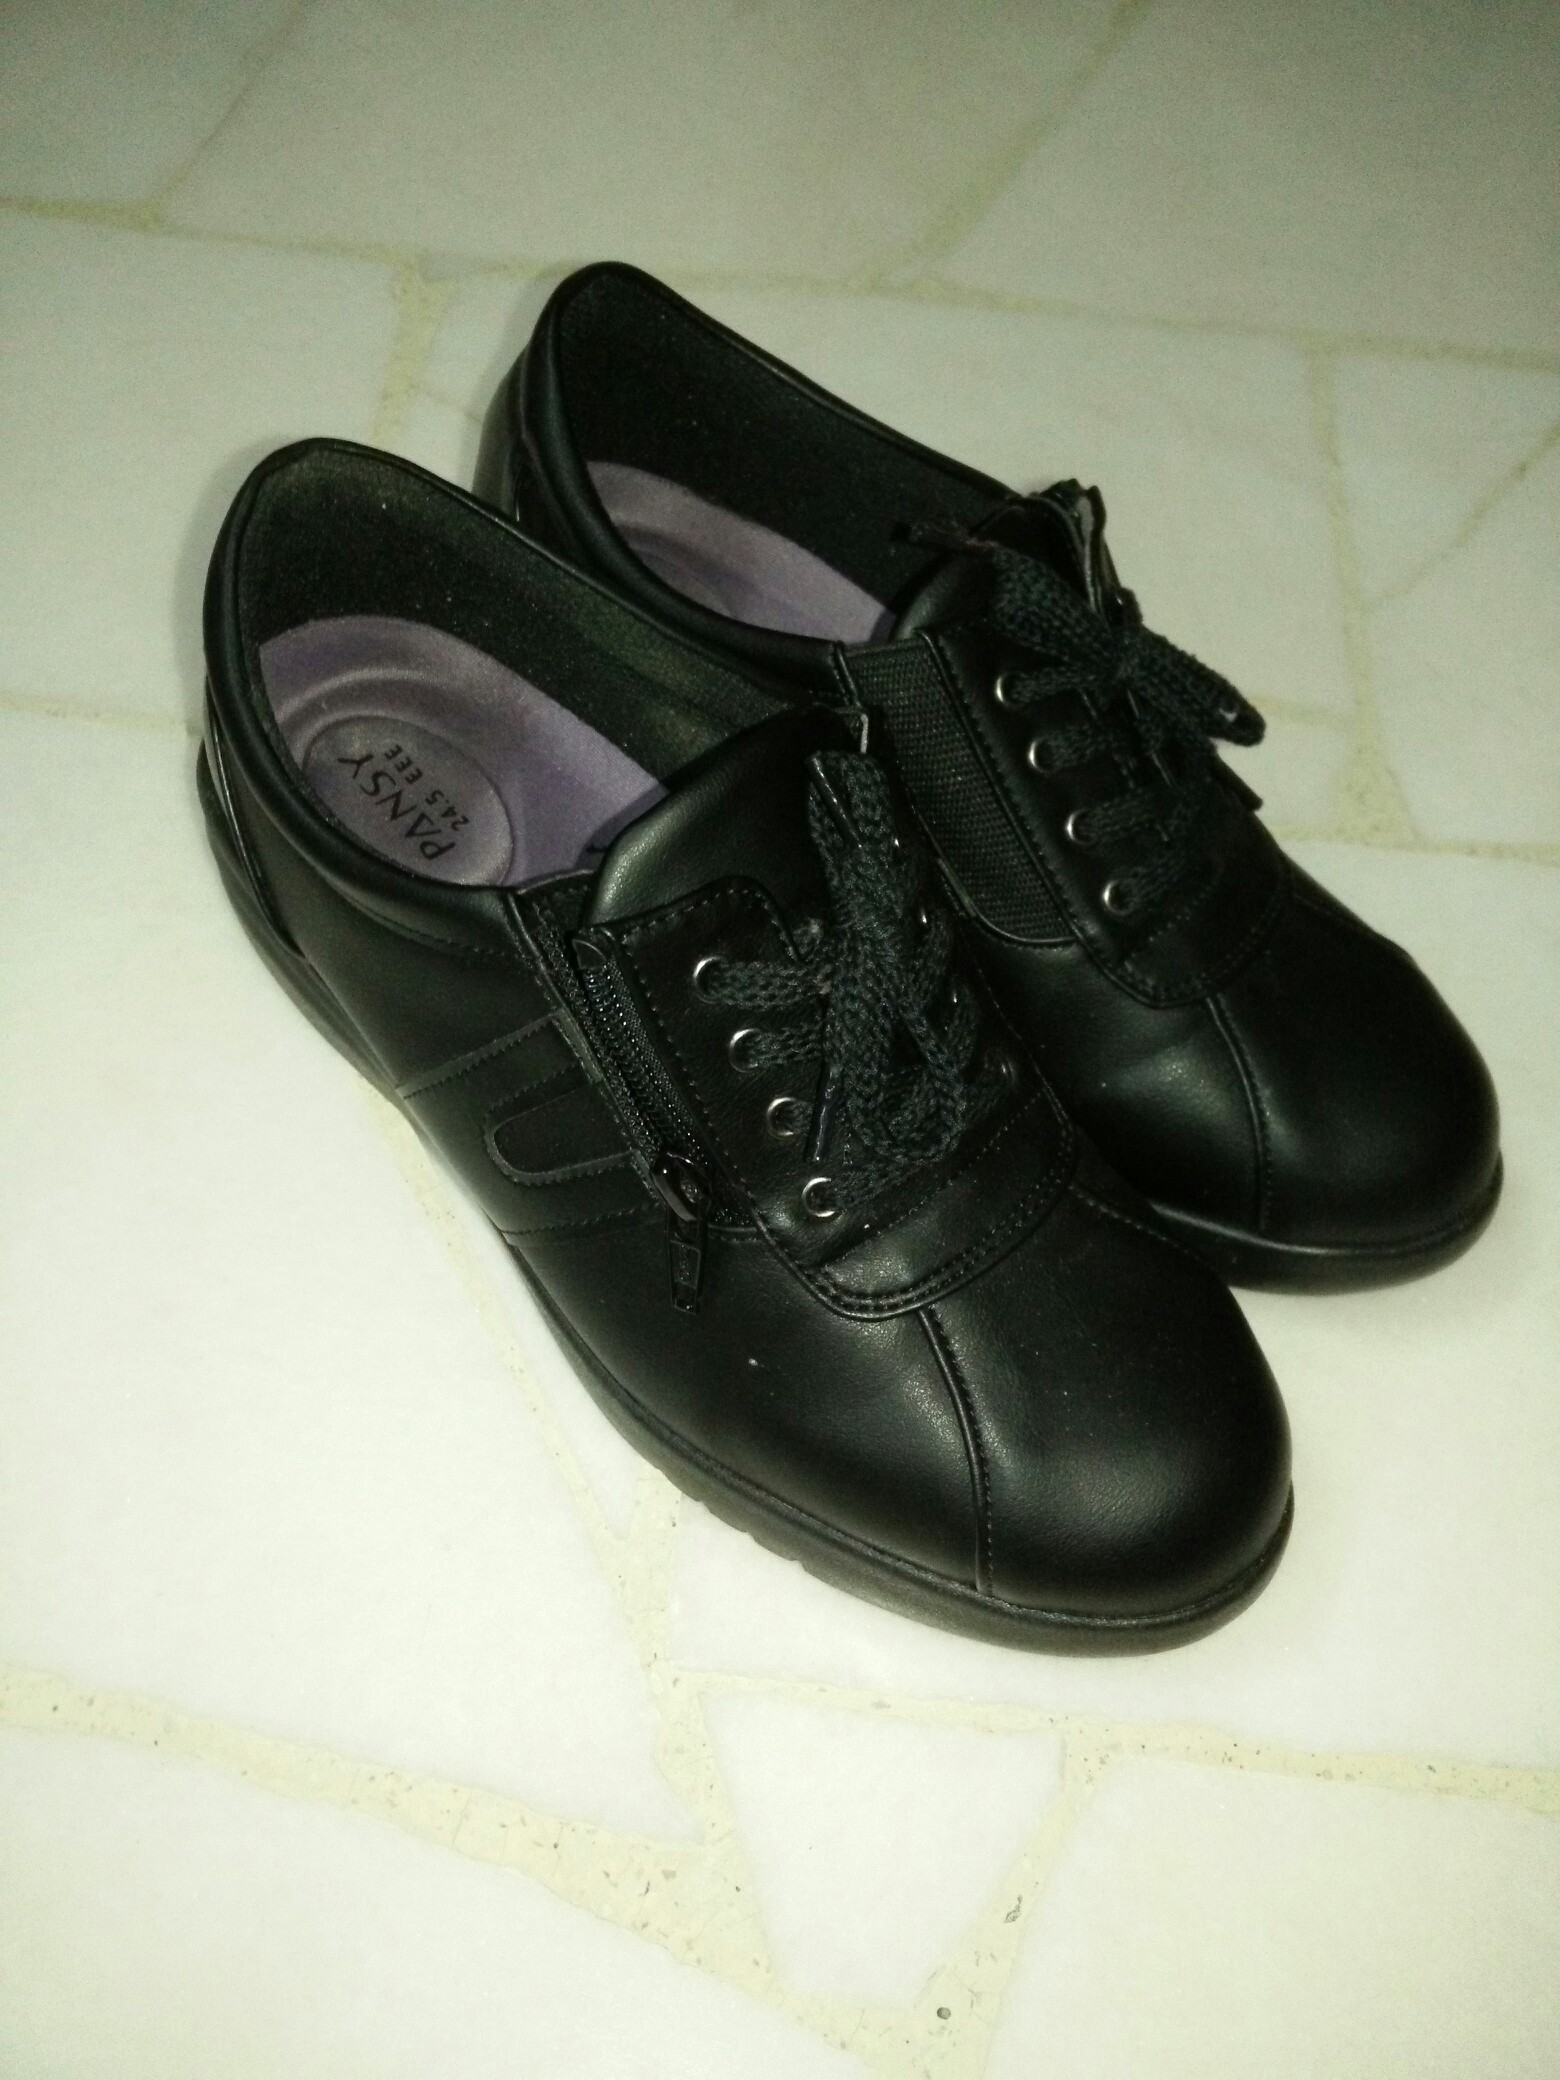 c94bdf09e58 Pansy black comfort shoes EEE 24.5